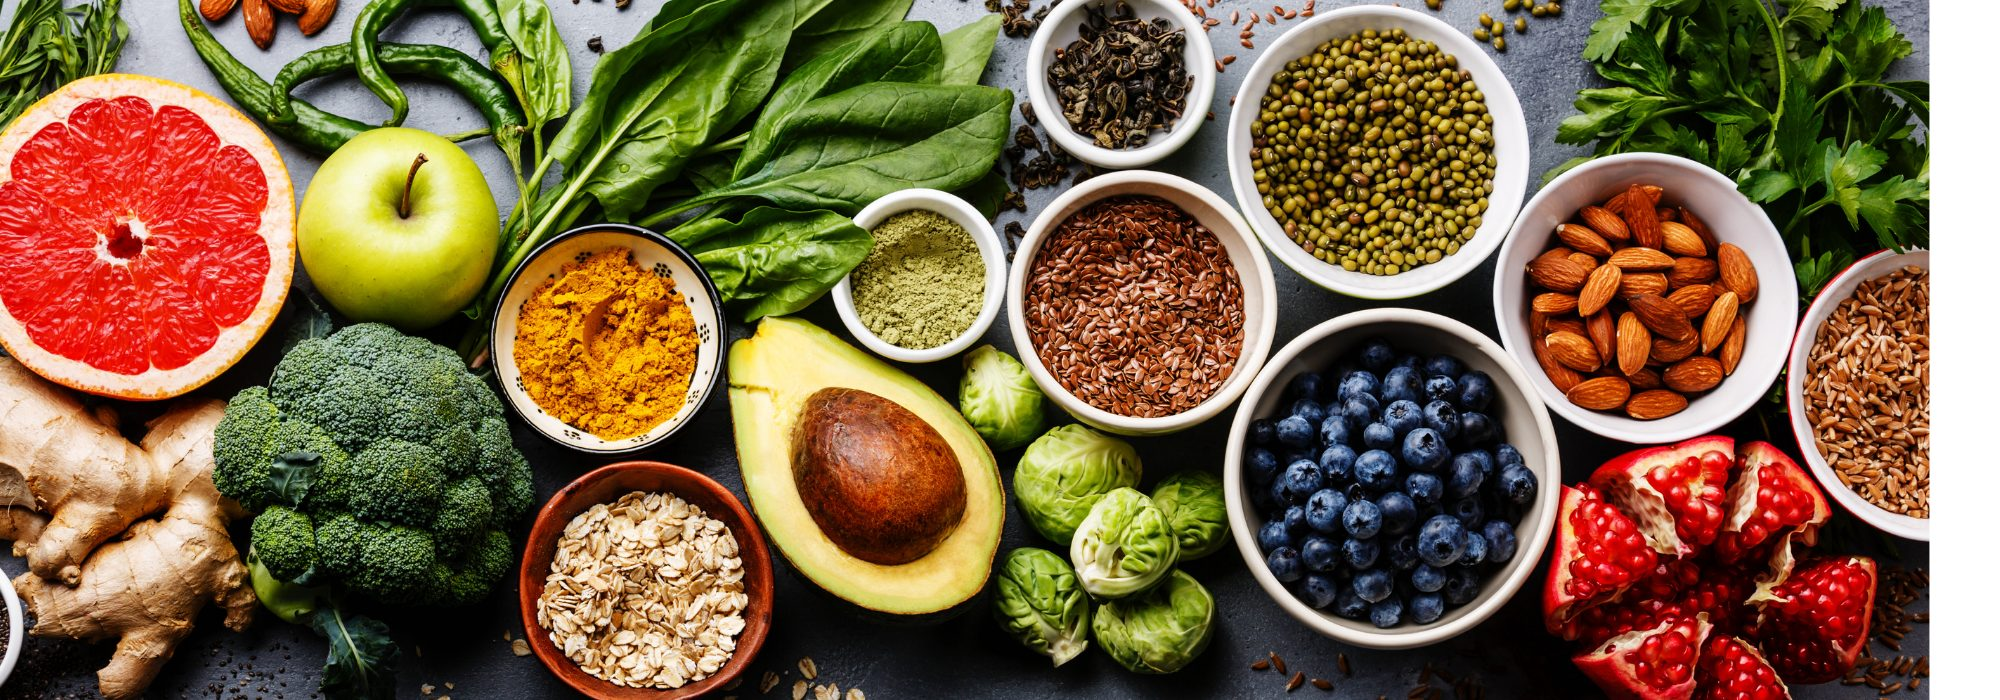 Blog post by our Nutritional Therapist Deborah Lethby.